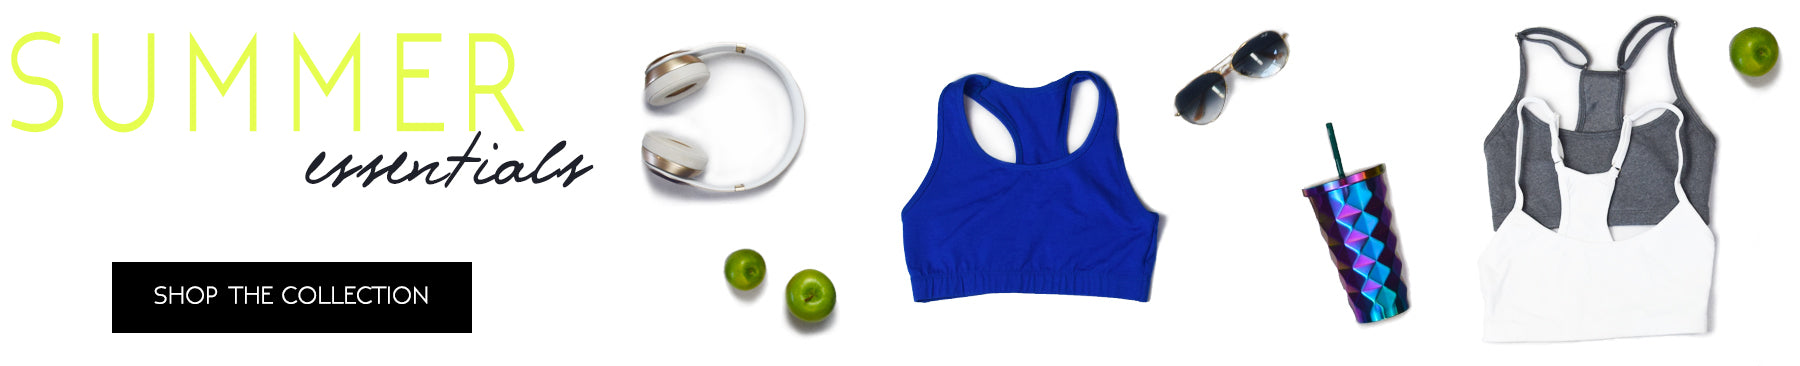 ad1645284fb08 Organic Workout Clothes | Bamboo Fitness Apparel | ECO - Intouch Clothing